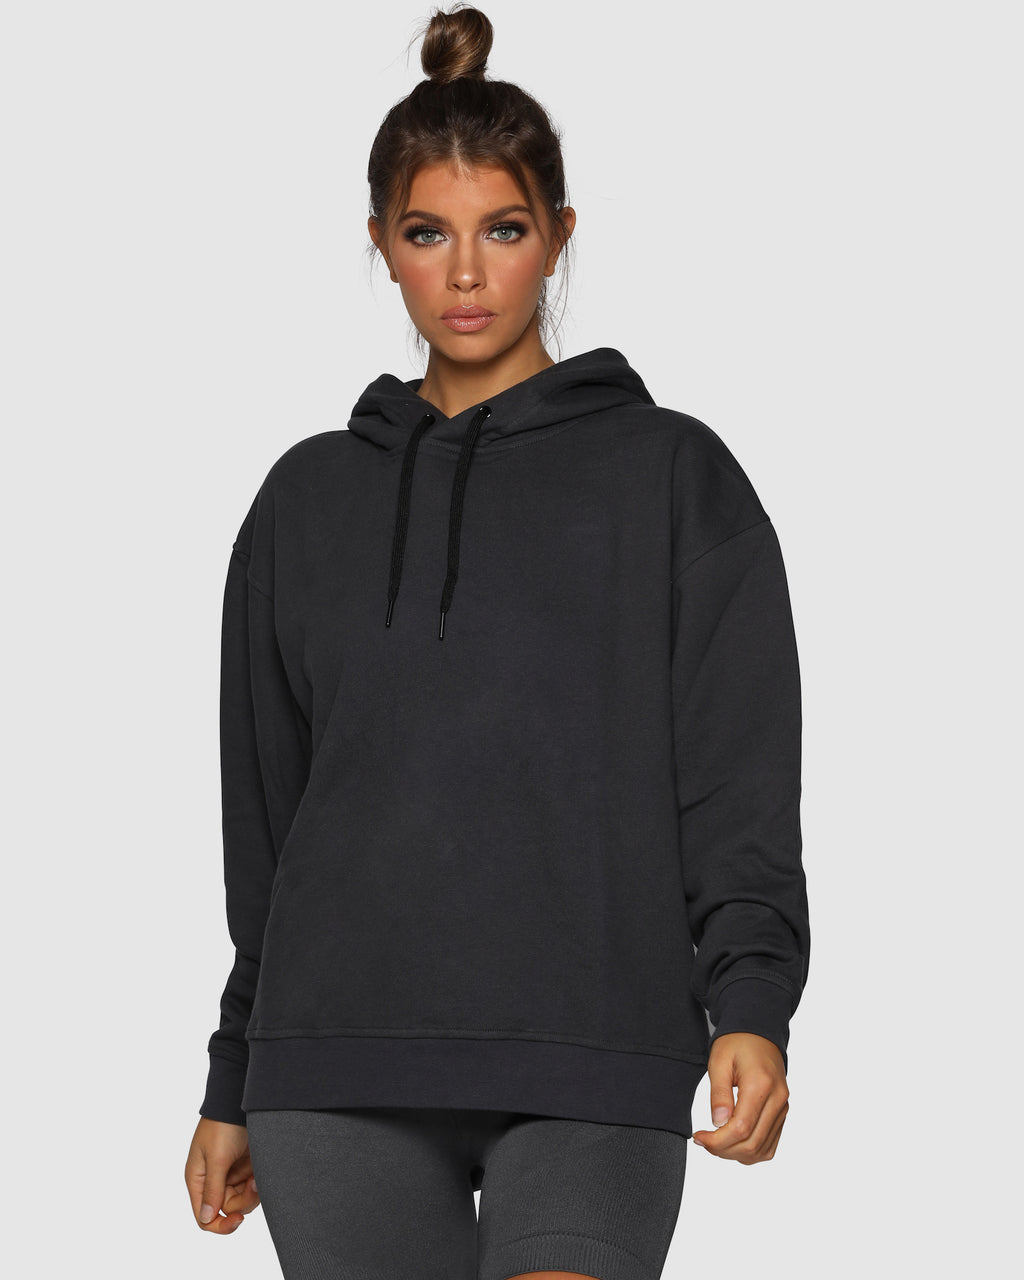 Nicky Kay branded hoodie - Oversized - Charcoal